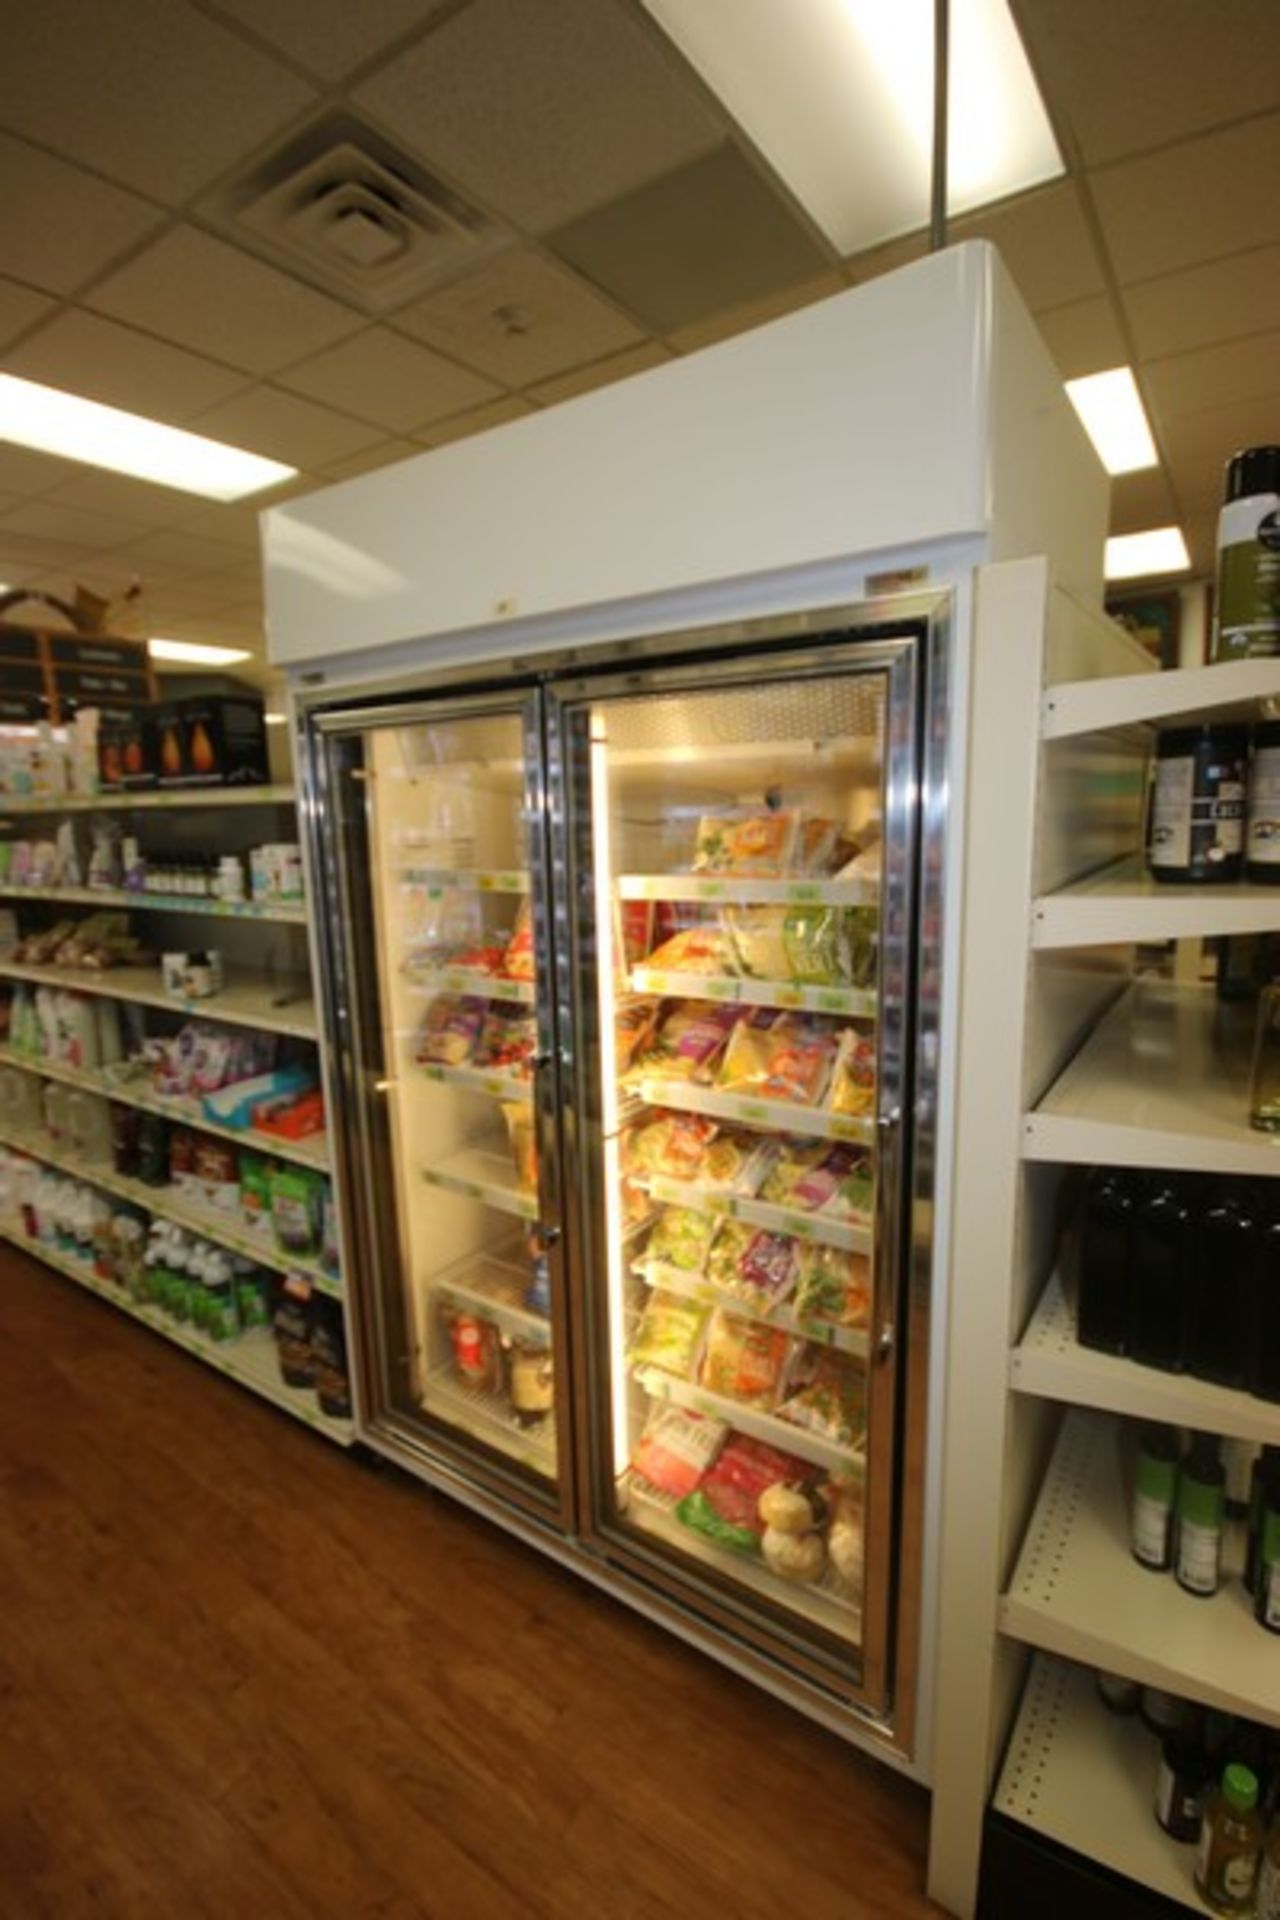 Hussman 2-Door Refrigerator, M/N HGL-2-TS, S/N 08D01598-153, 208-230 Volts, 1 Phase, Overall - Image 2 of 5